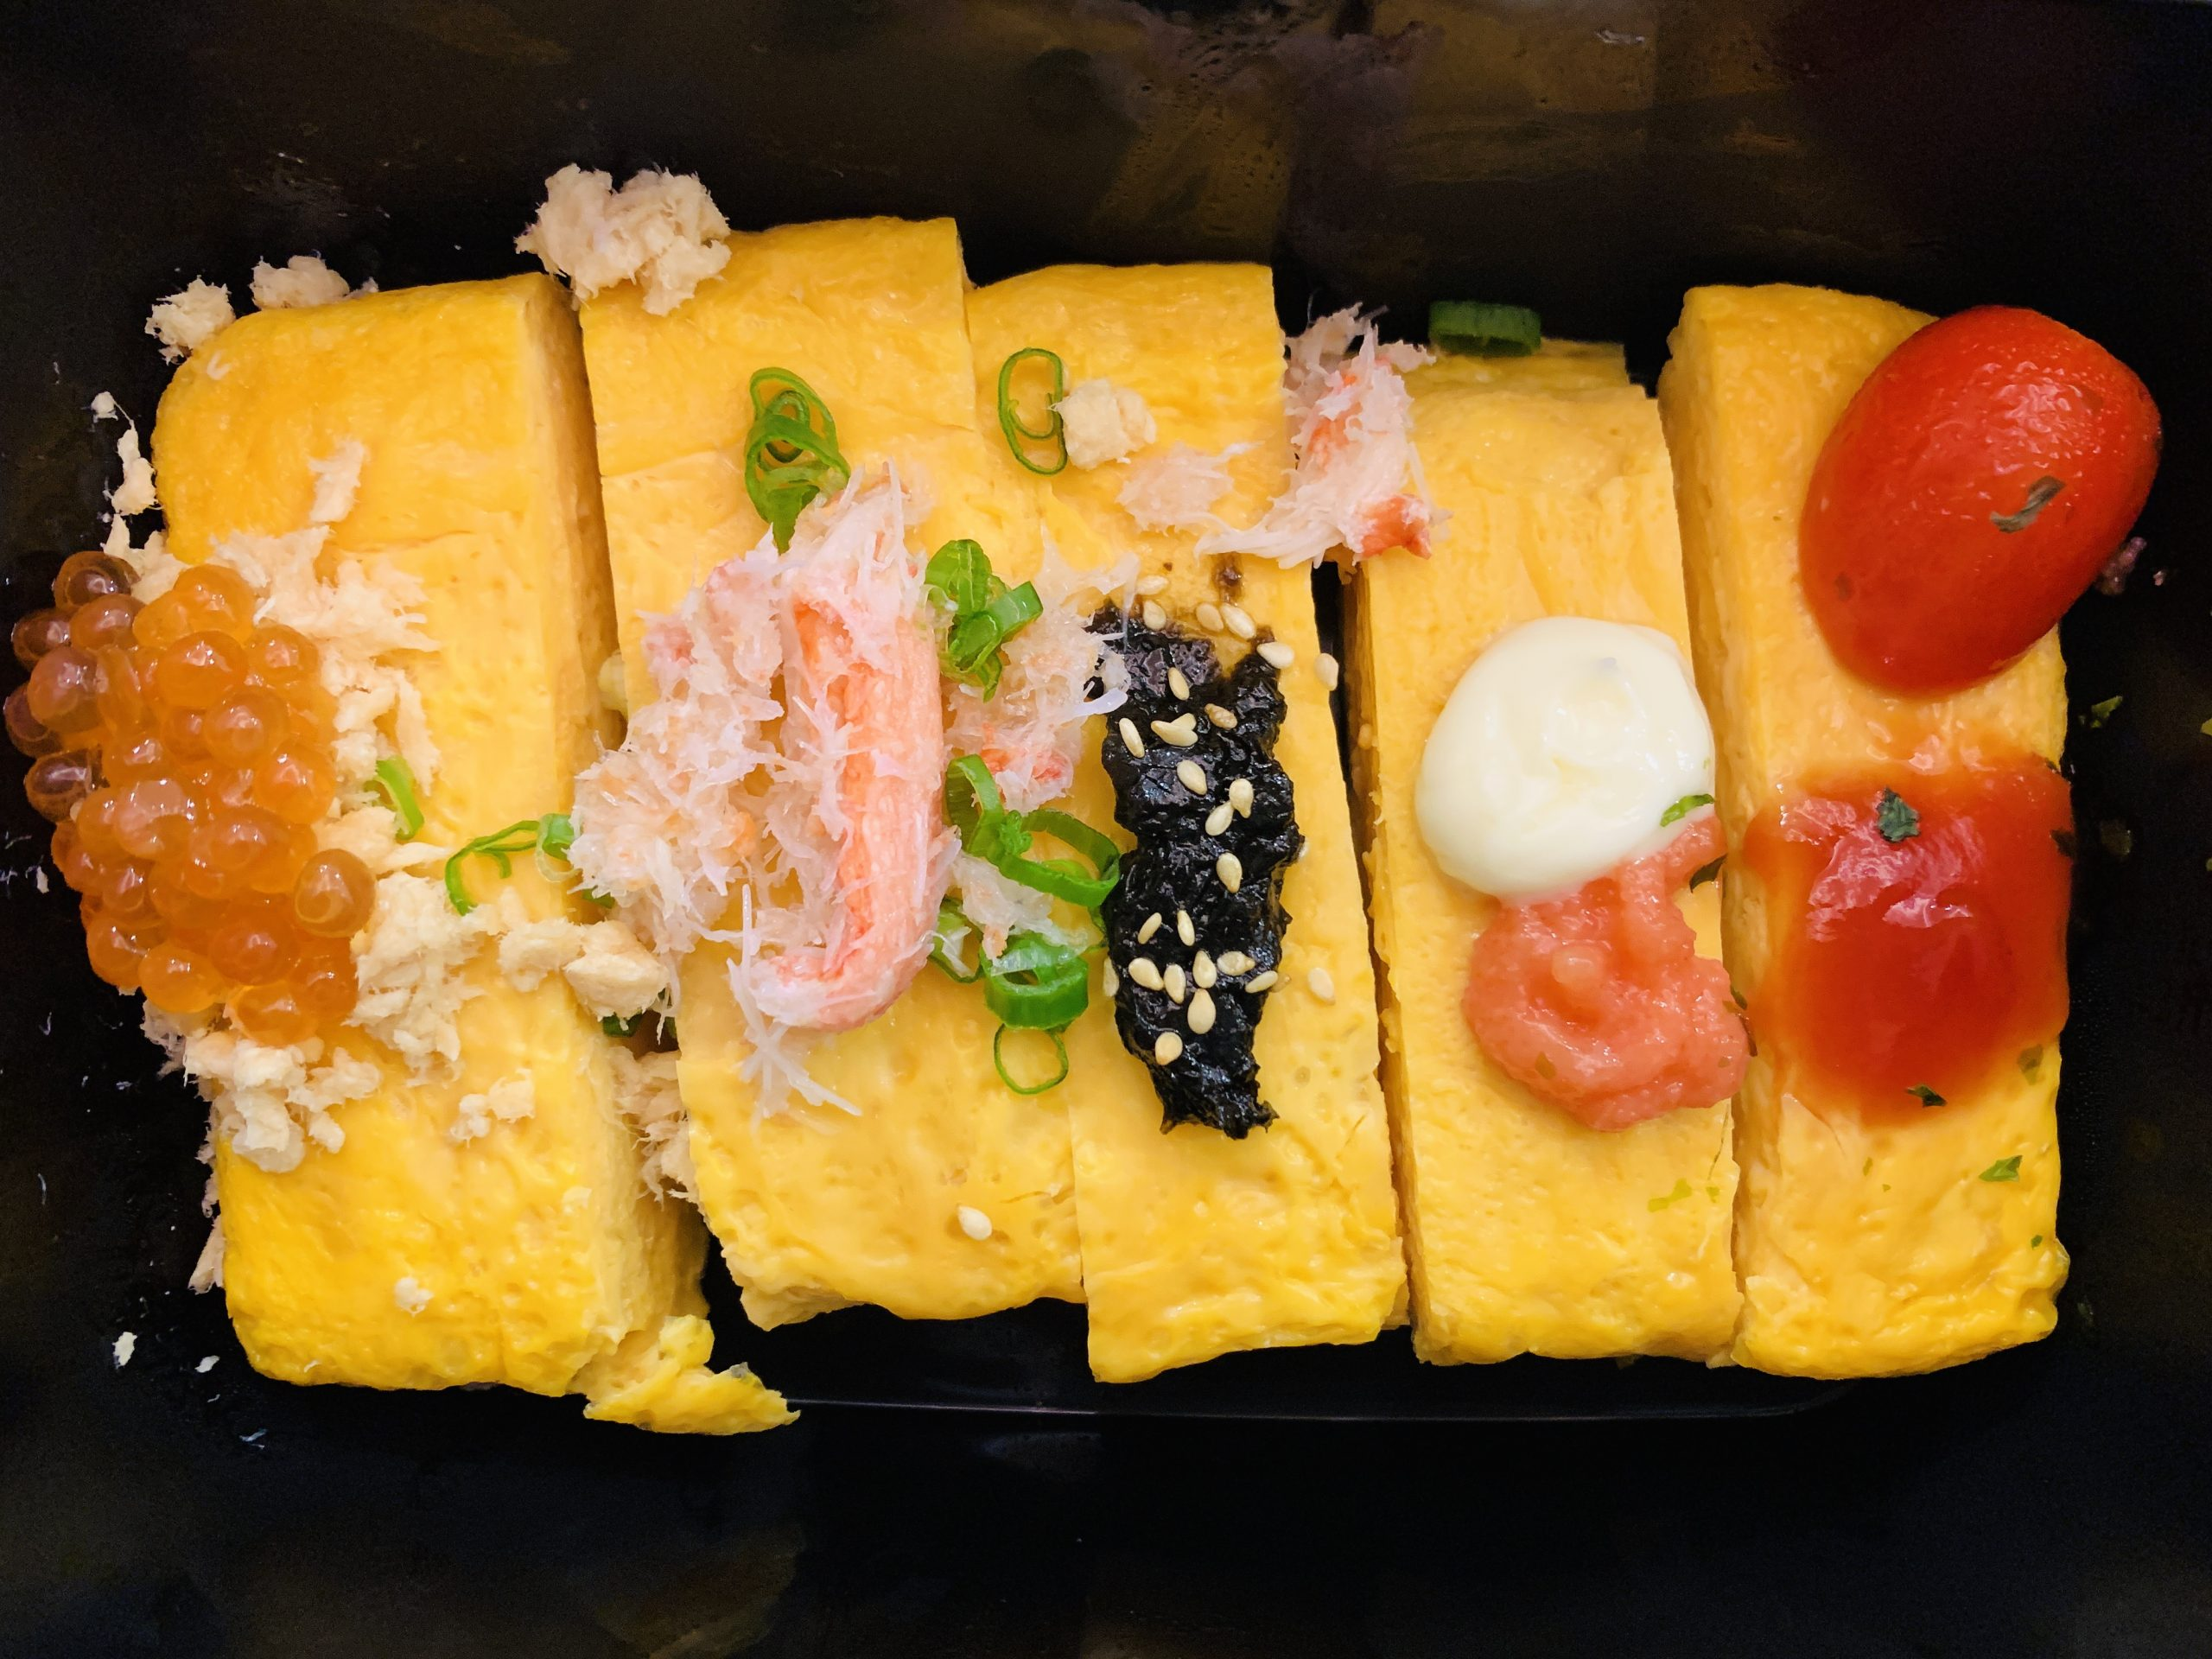 Tamago-EN - 5-Kind Japanese Omelette Skewer